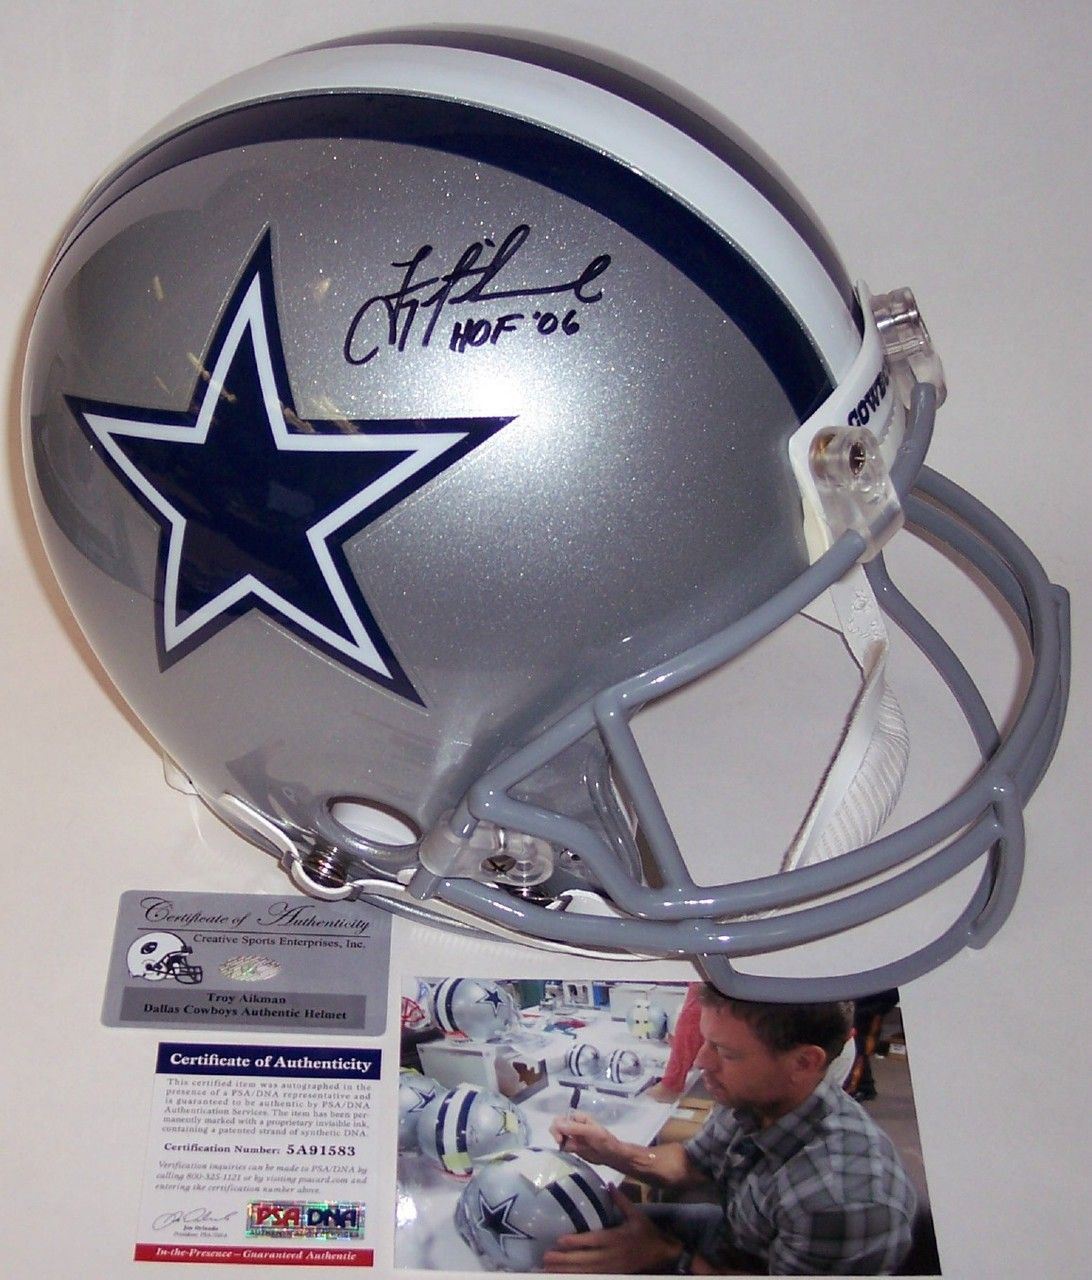 a4e0b1be9 Dallas Cowboys · Dna · Troy Aikman - Autographed Official Full Size Riddell  Authentic Proline Football Helmet w HOF 06